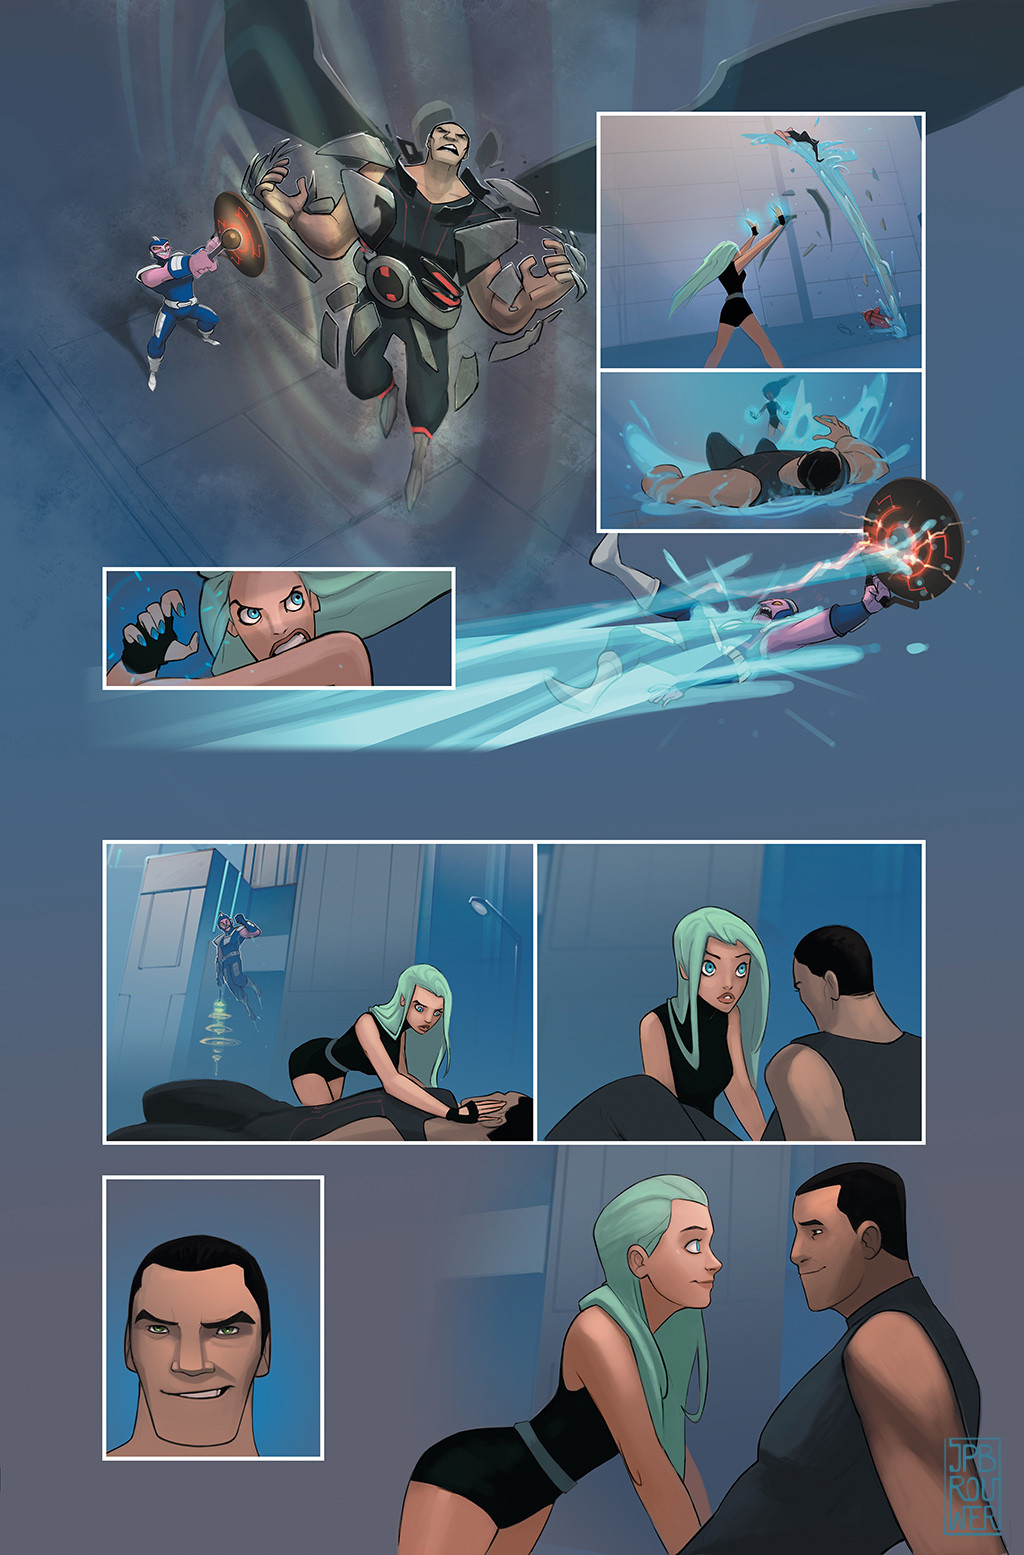 James brouwer jamesbrouwer beyondorigins aquagirl pg09